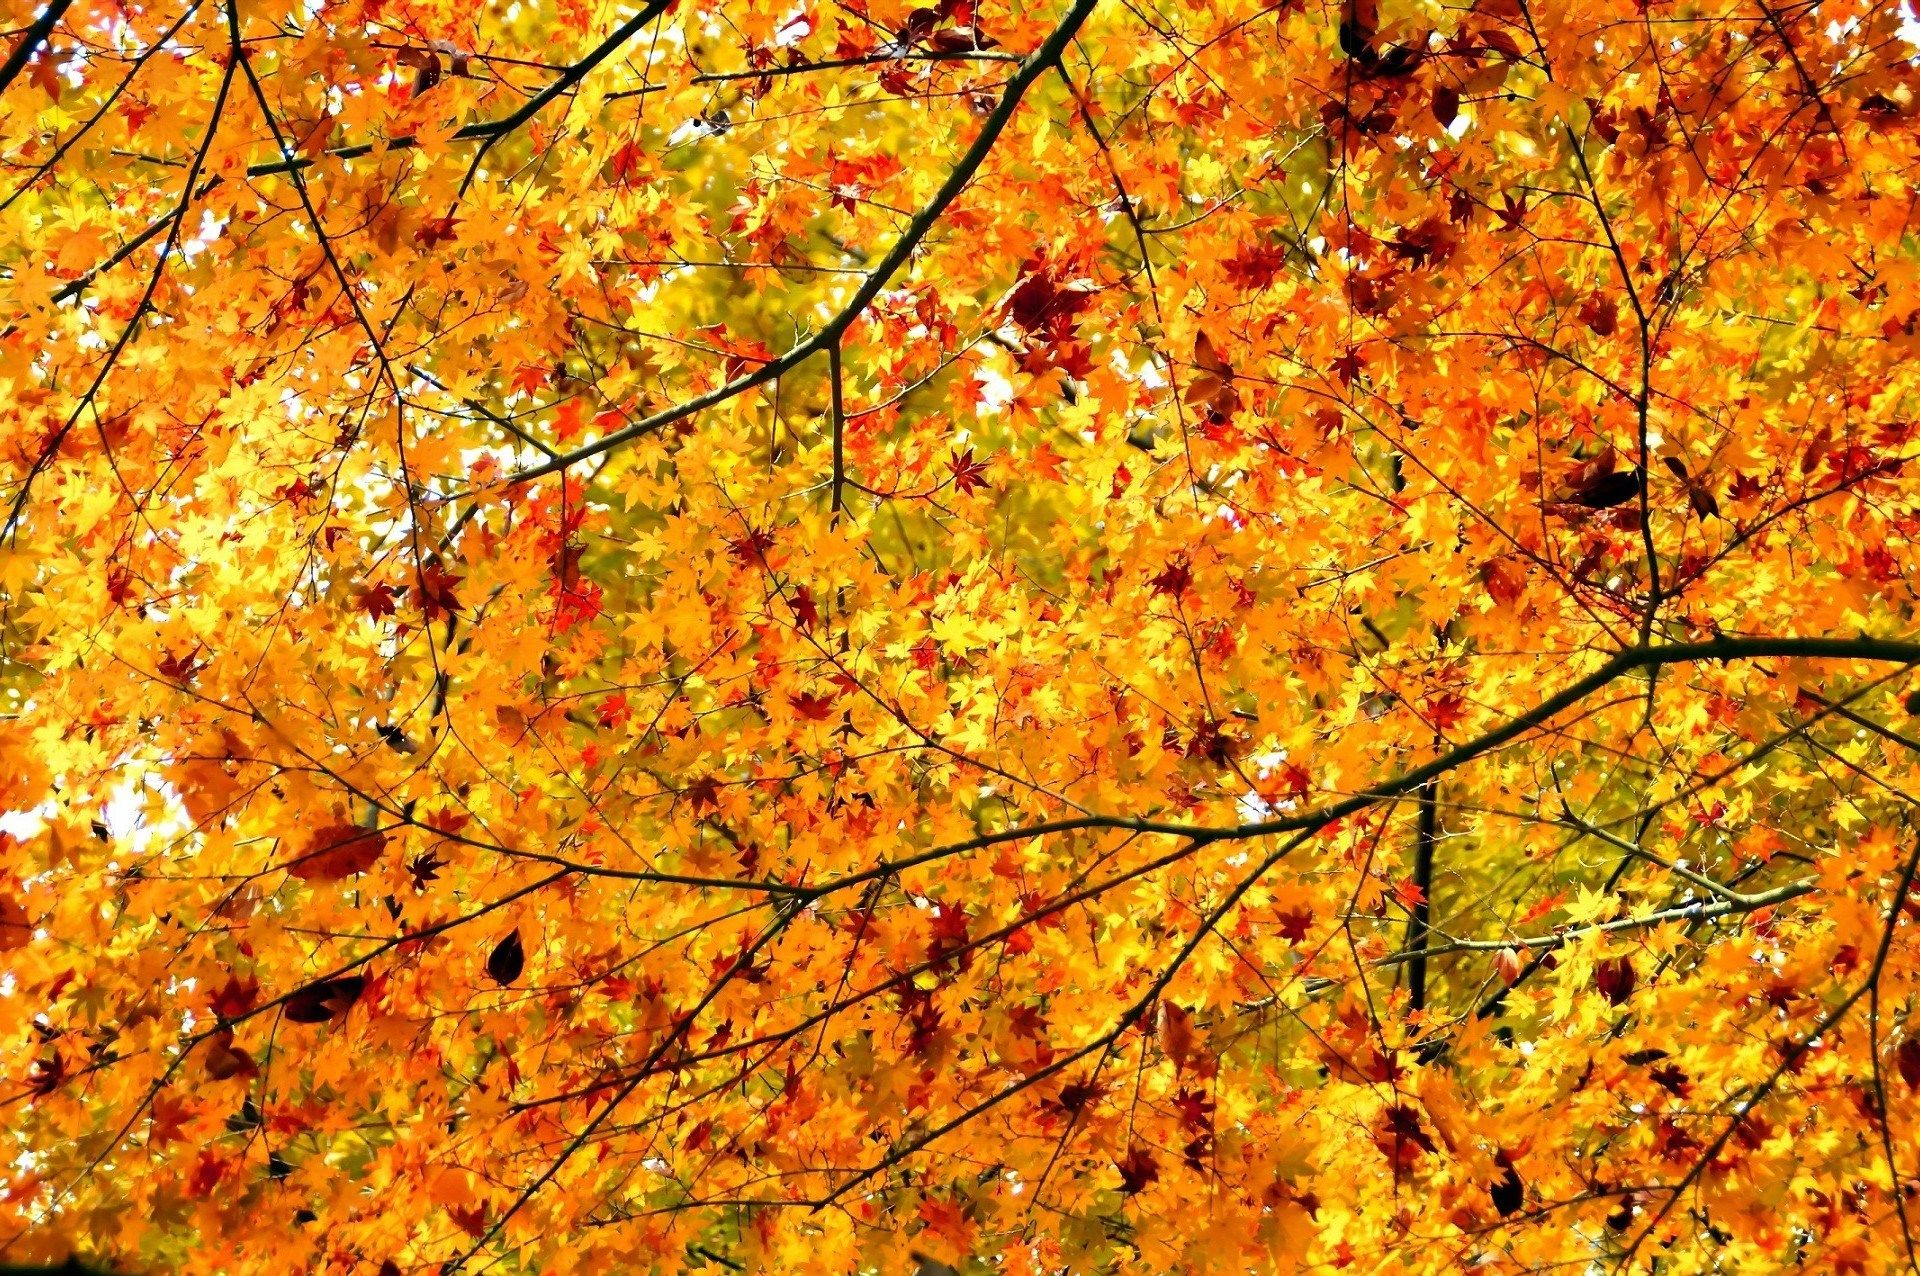 Download Wallpaper Horse Autumn - 3106cba23c259ad9d12ad0be847e6ad8  Picture_135785.jpg